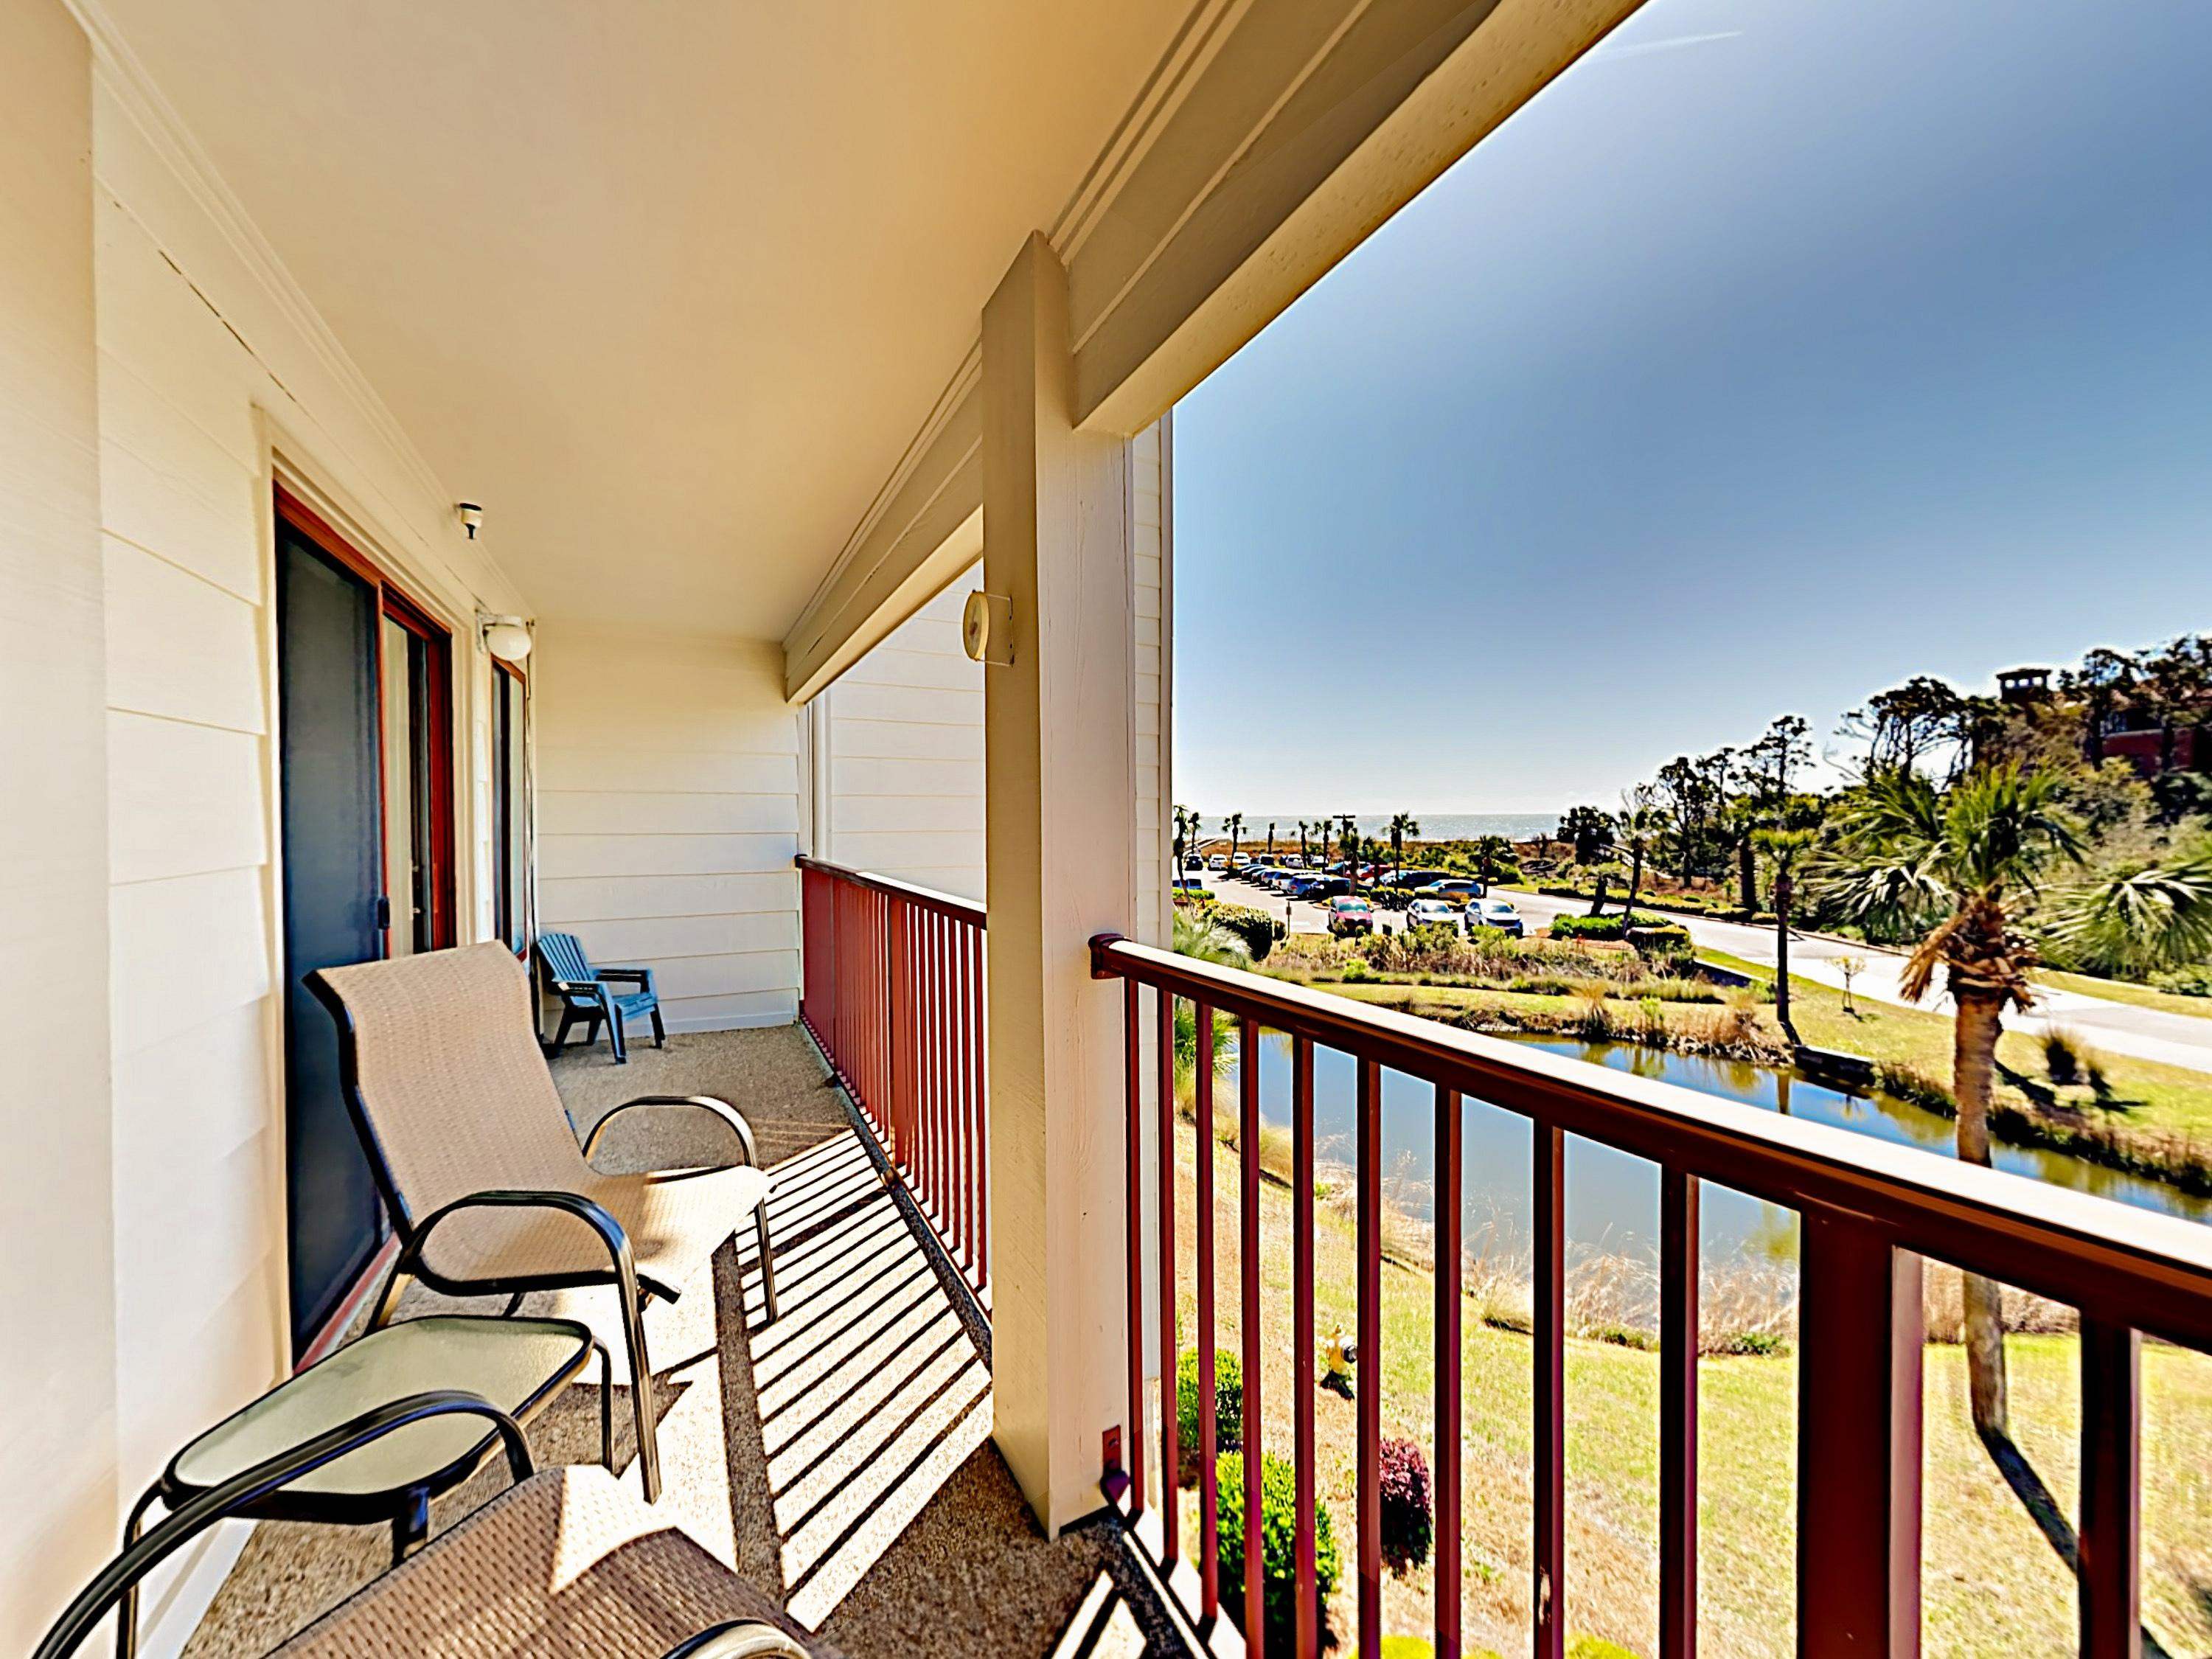 Welcome to Hilton Head Island! This condo is professionally managed by TurnKey Vacation Rentals.